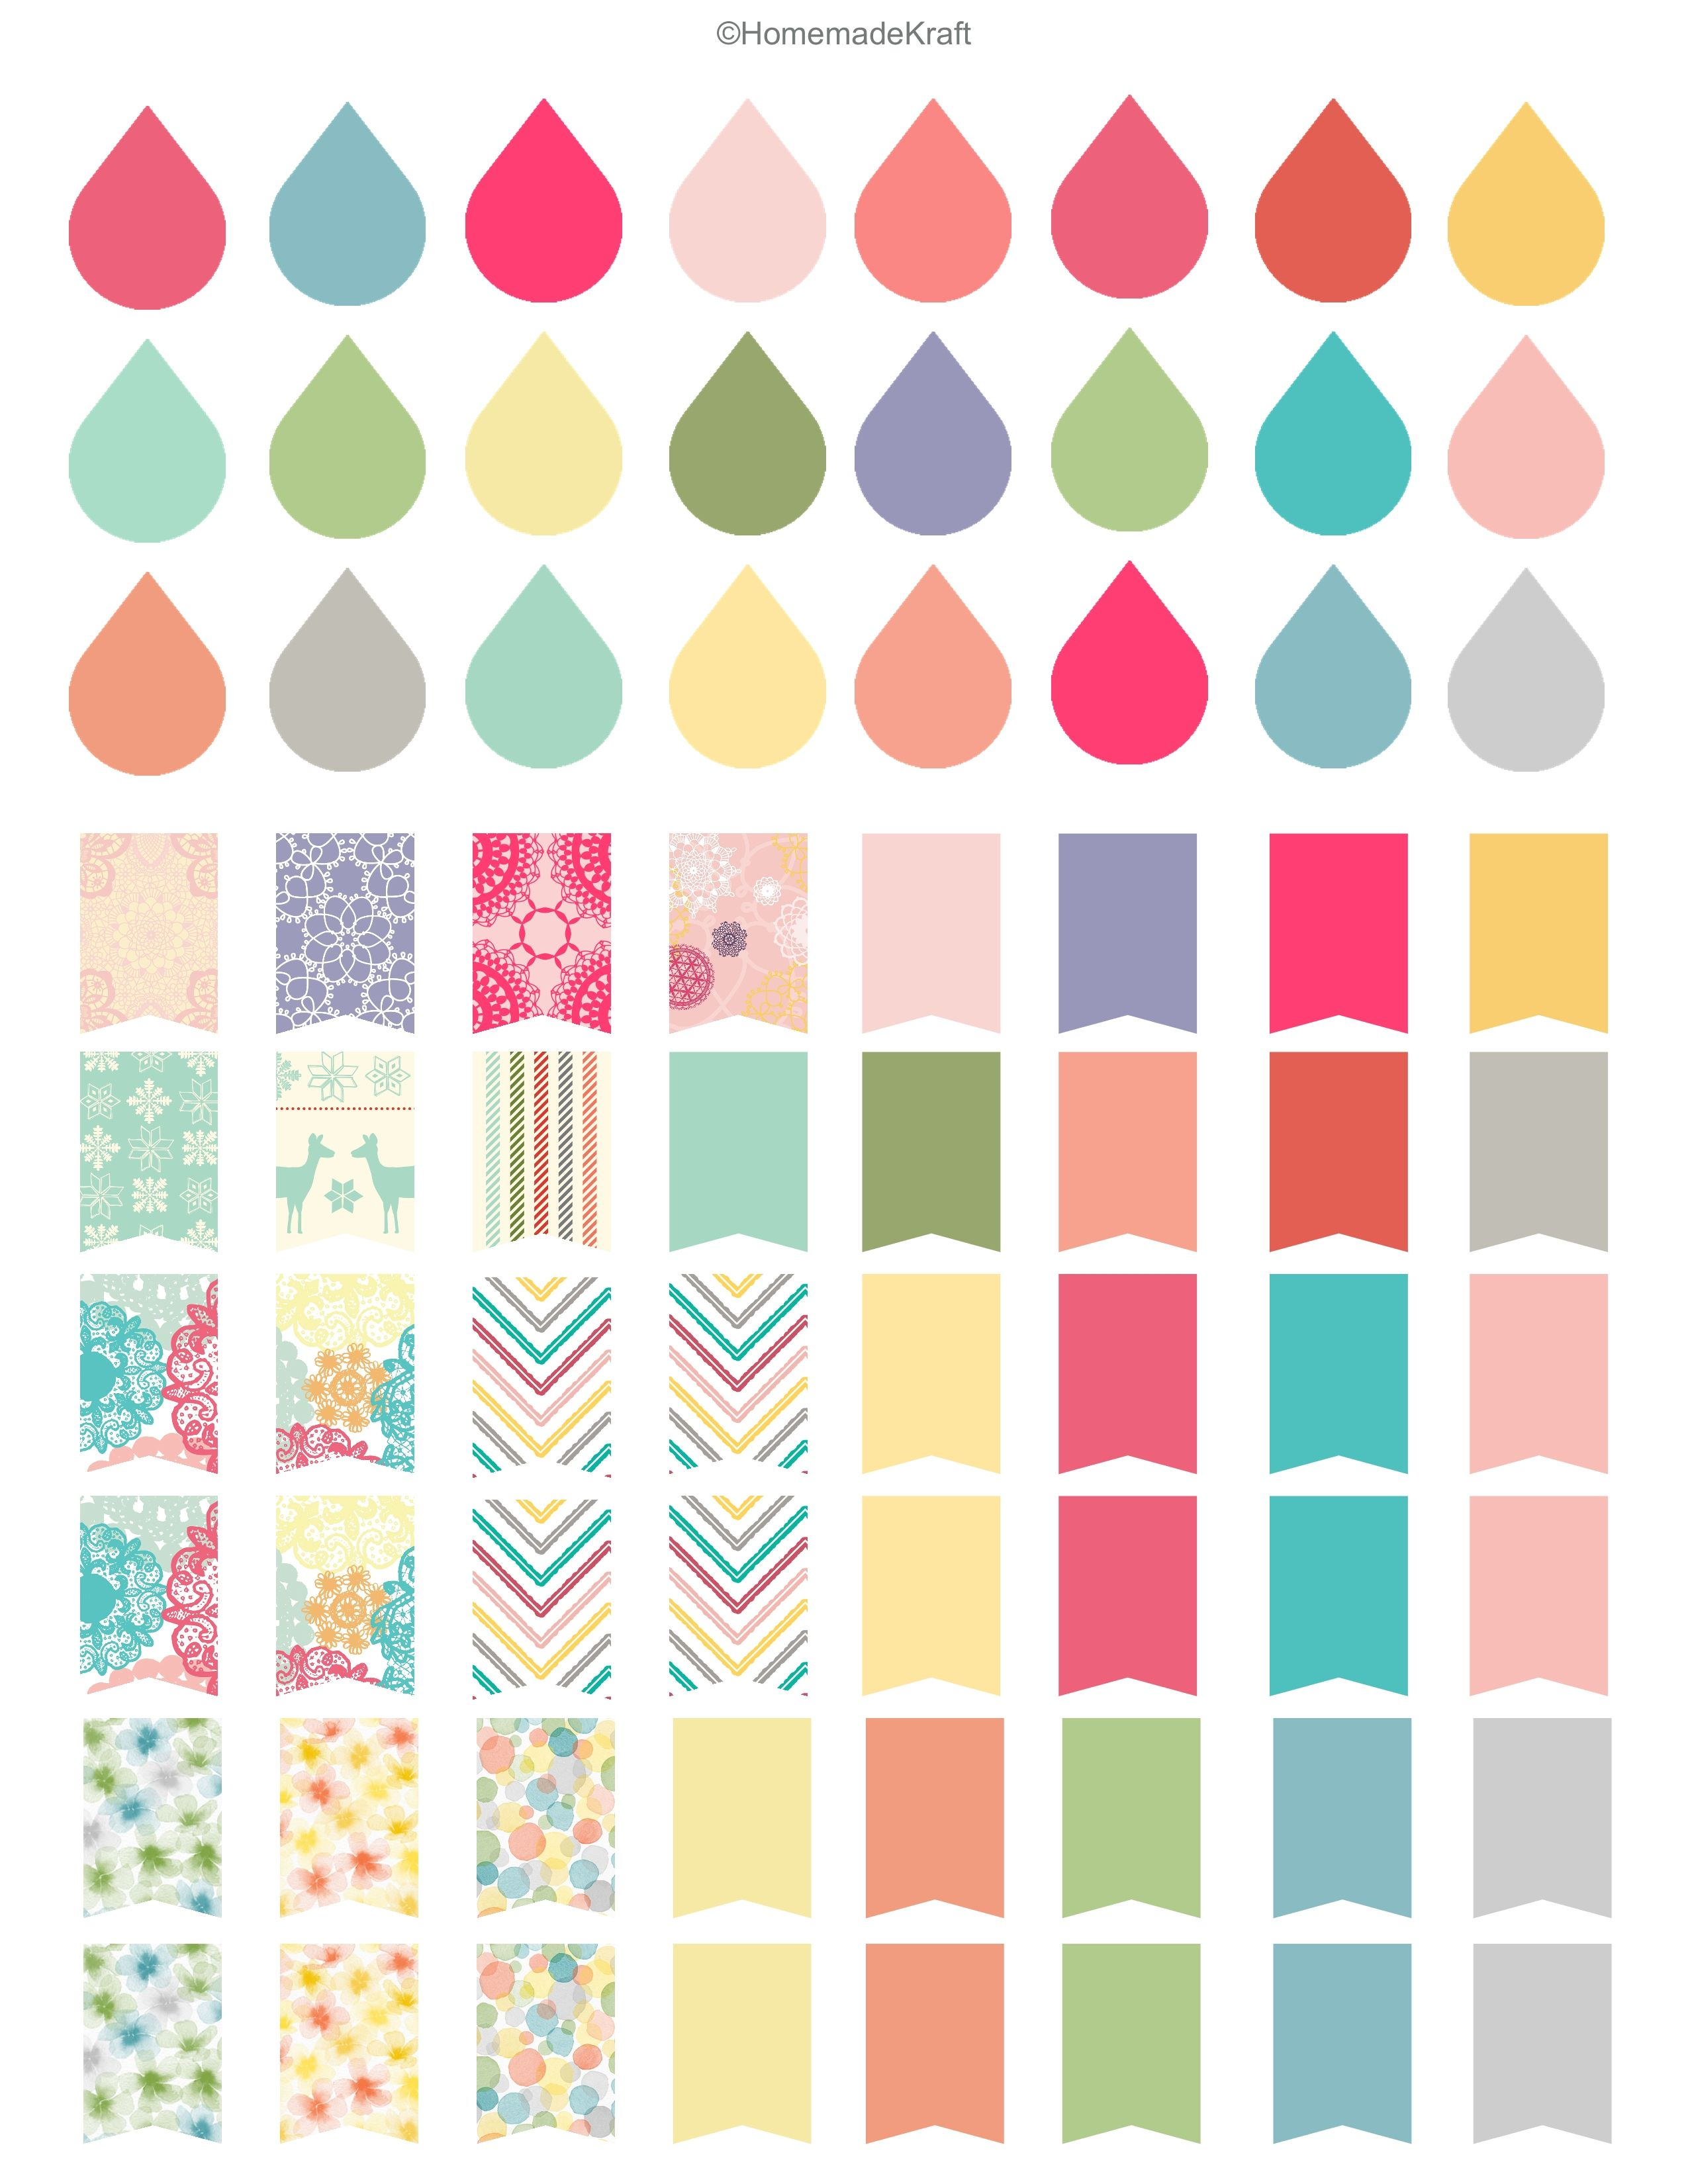 Free Sticker Printable! | Printable Planner Stickers